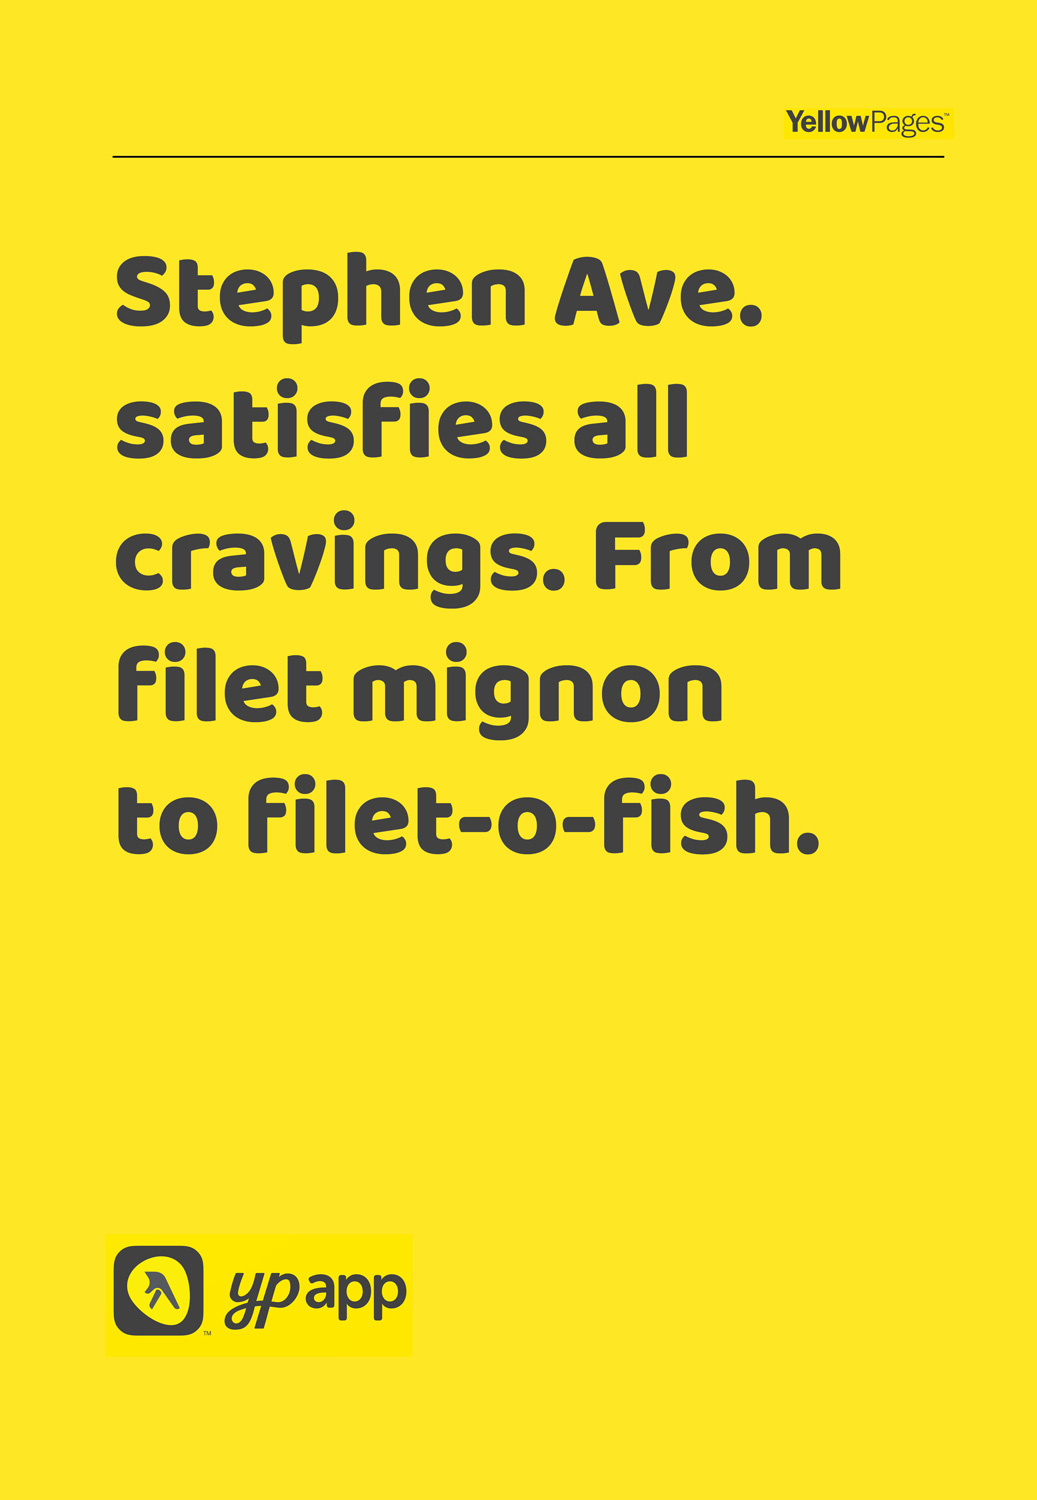 yellow pages ad Steven ave